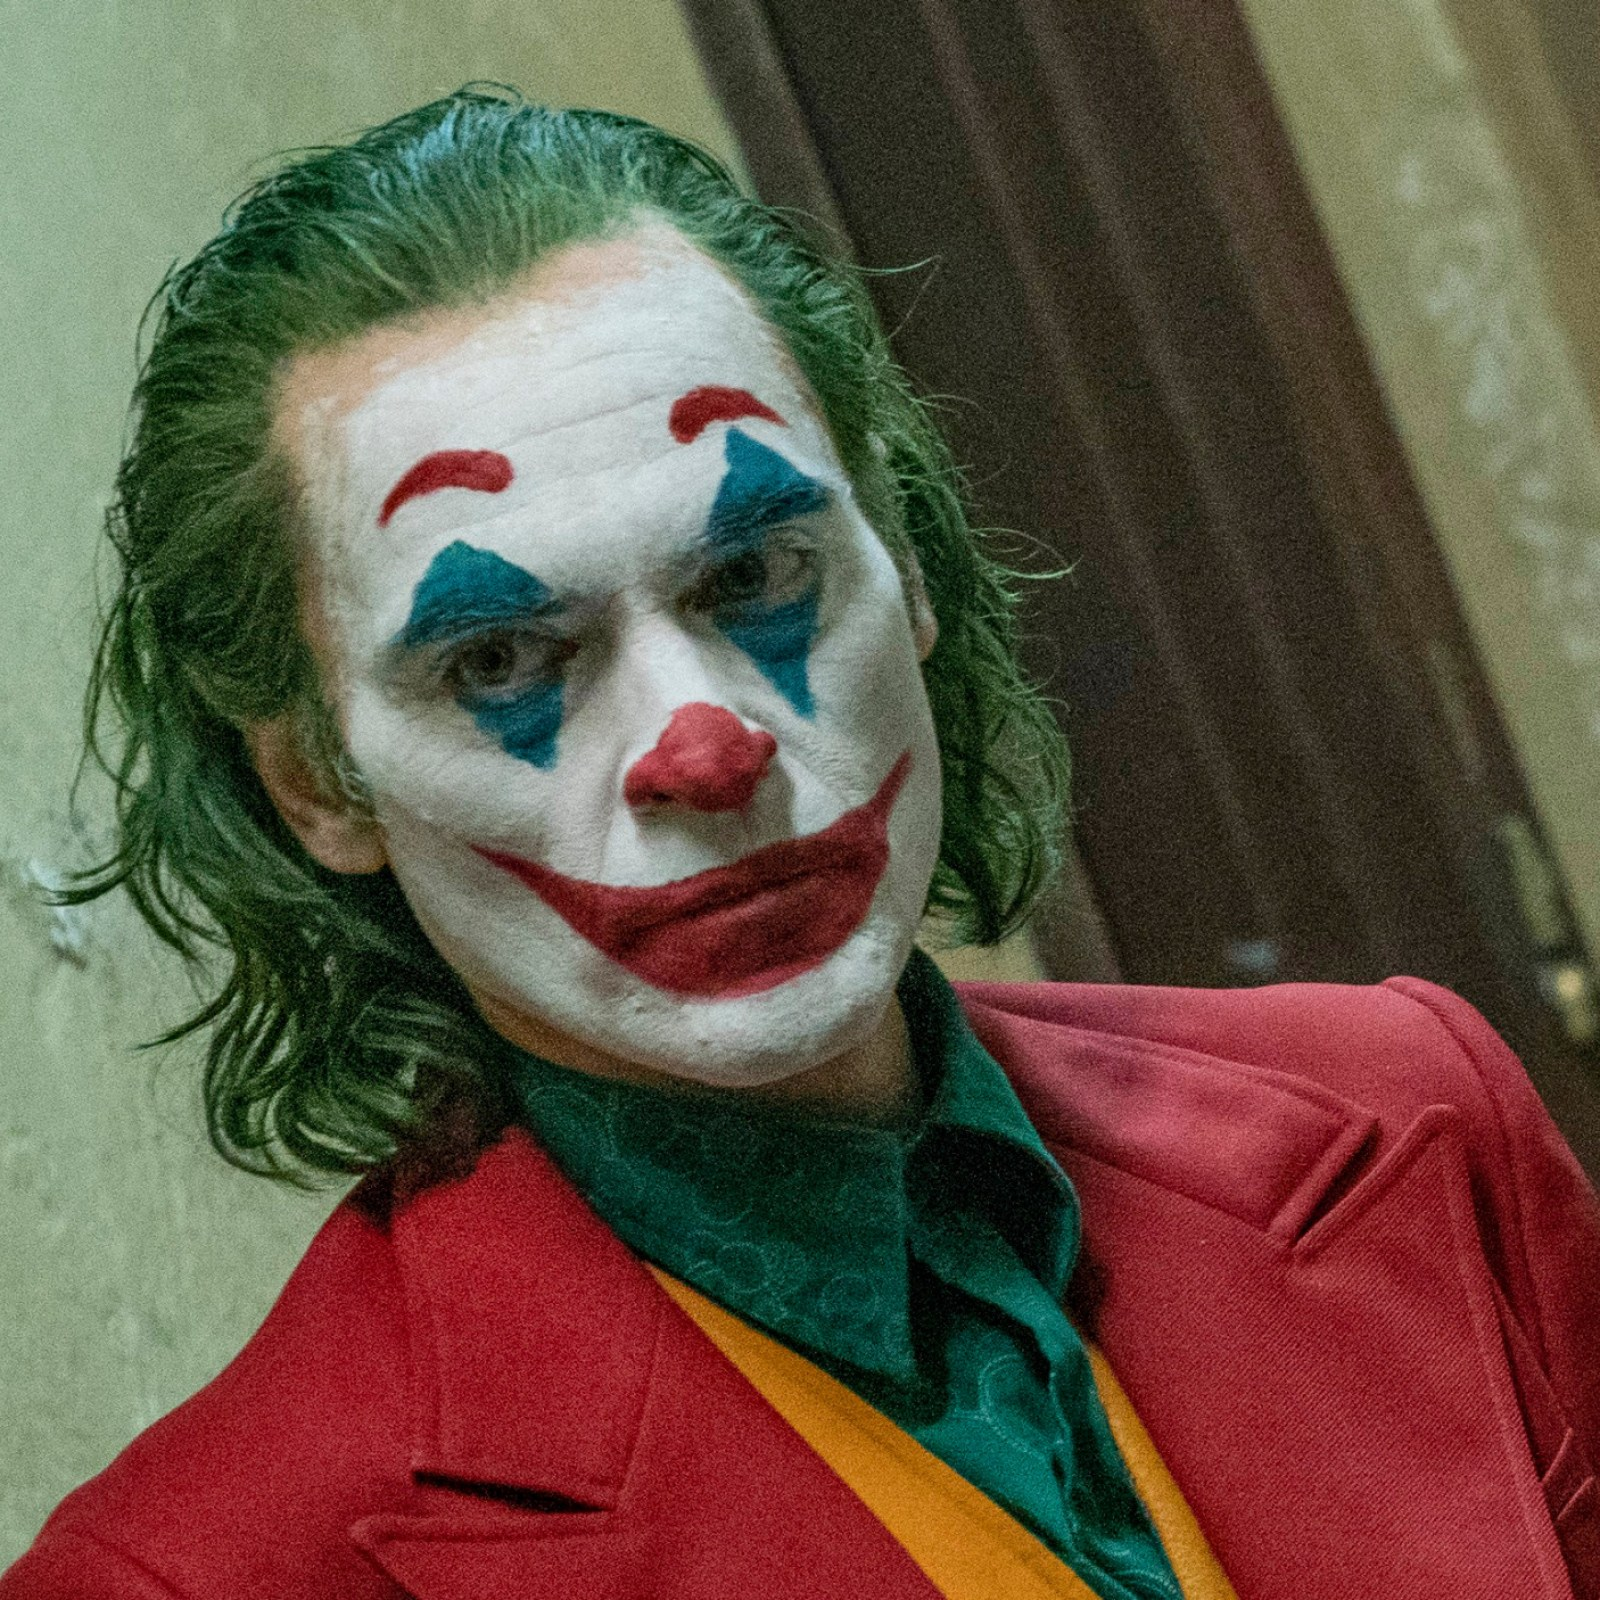 Joker Ending Explained What Happened At The End And Is